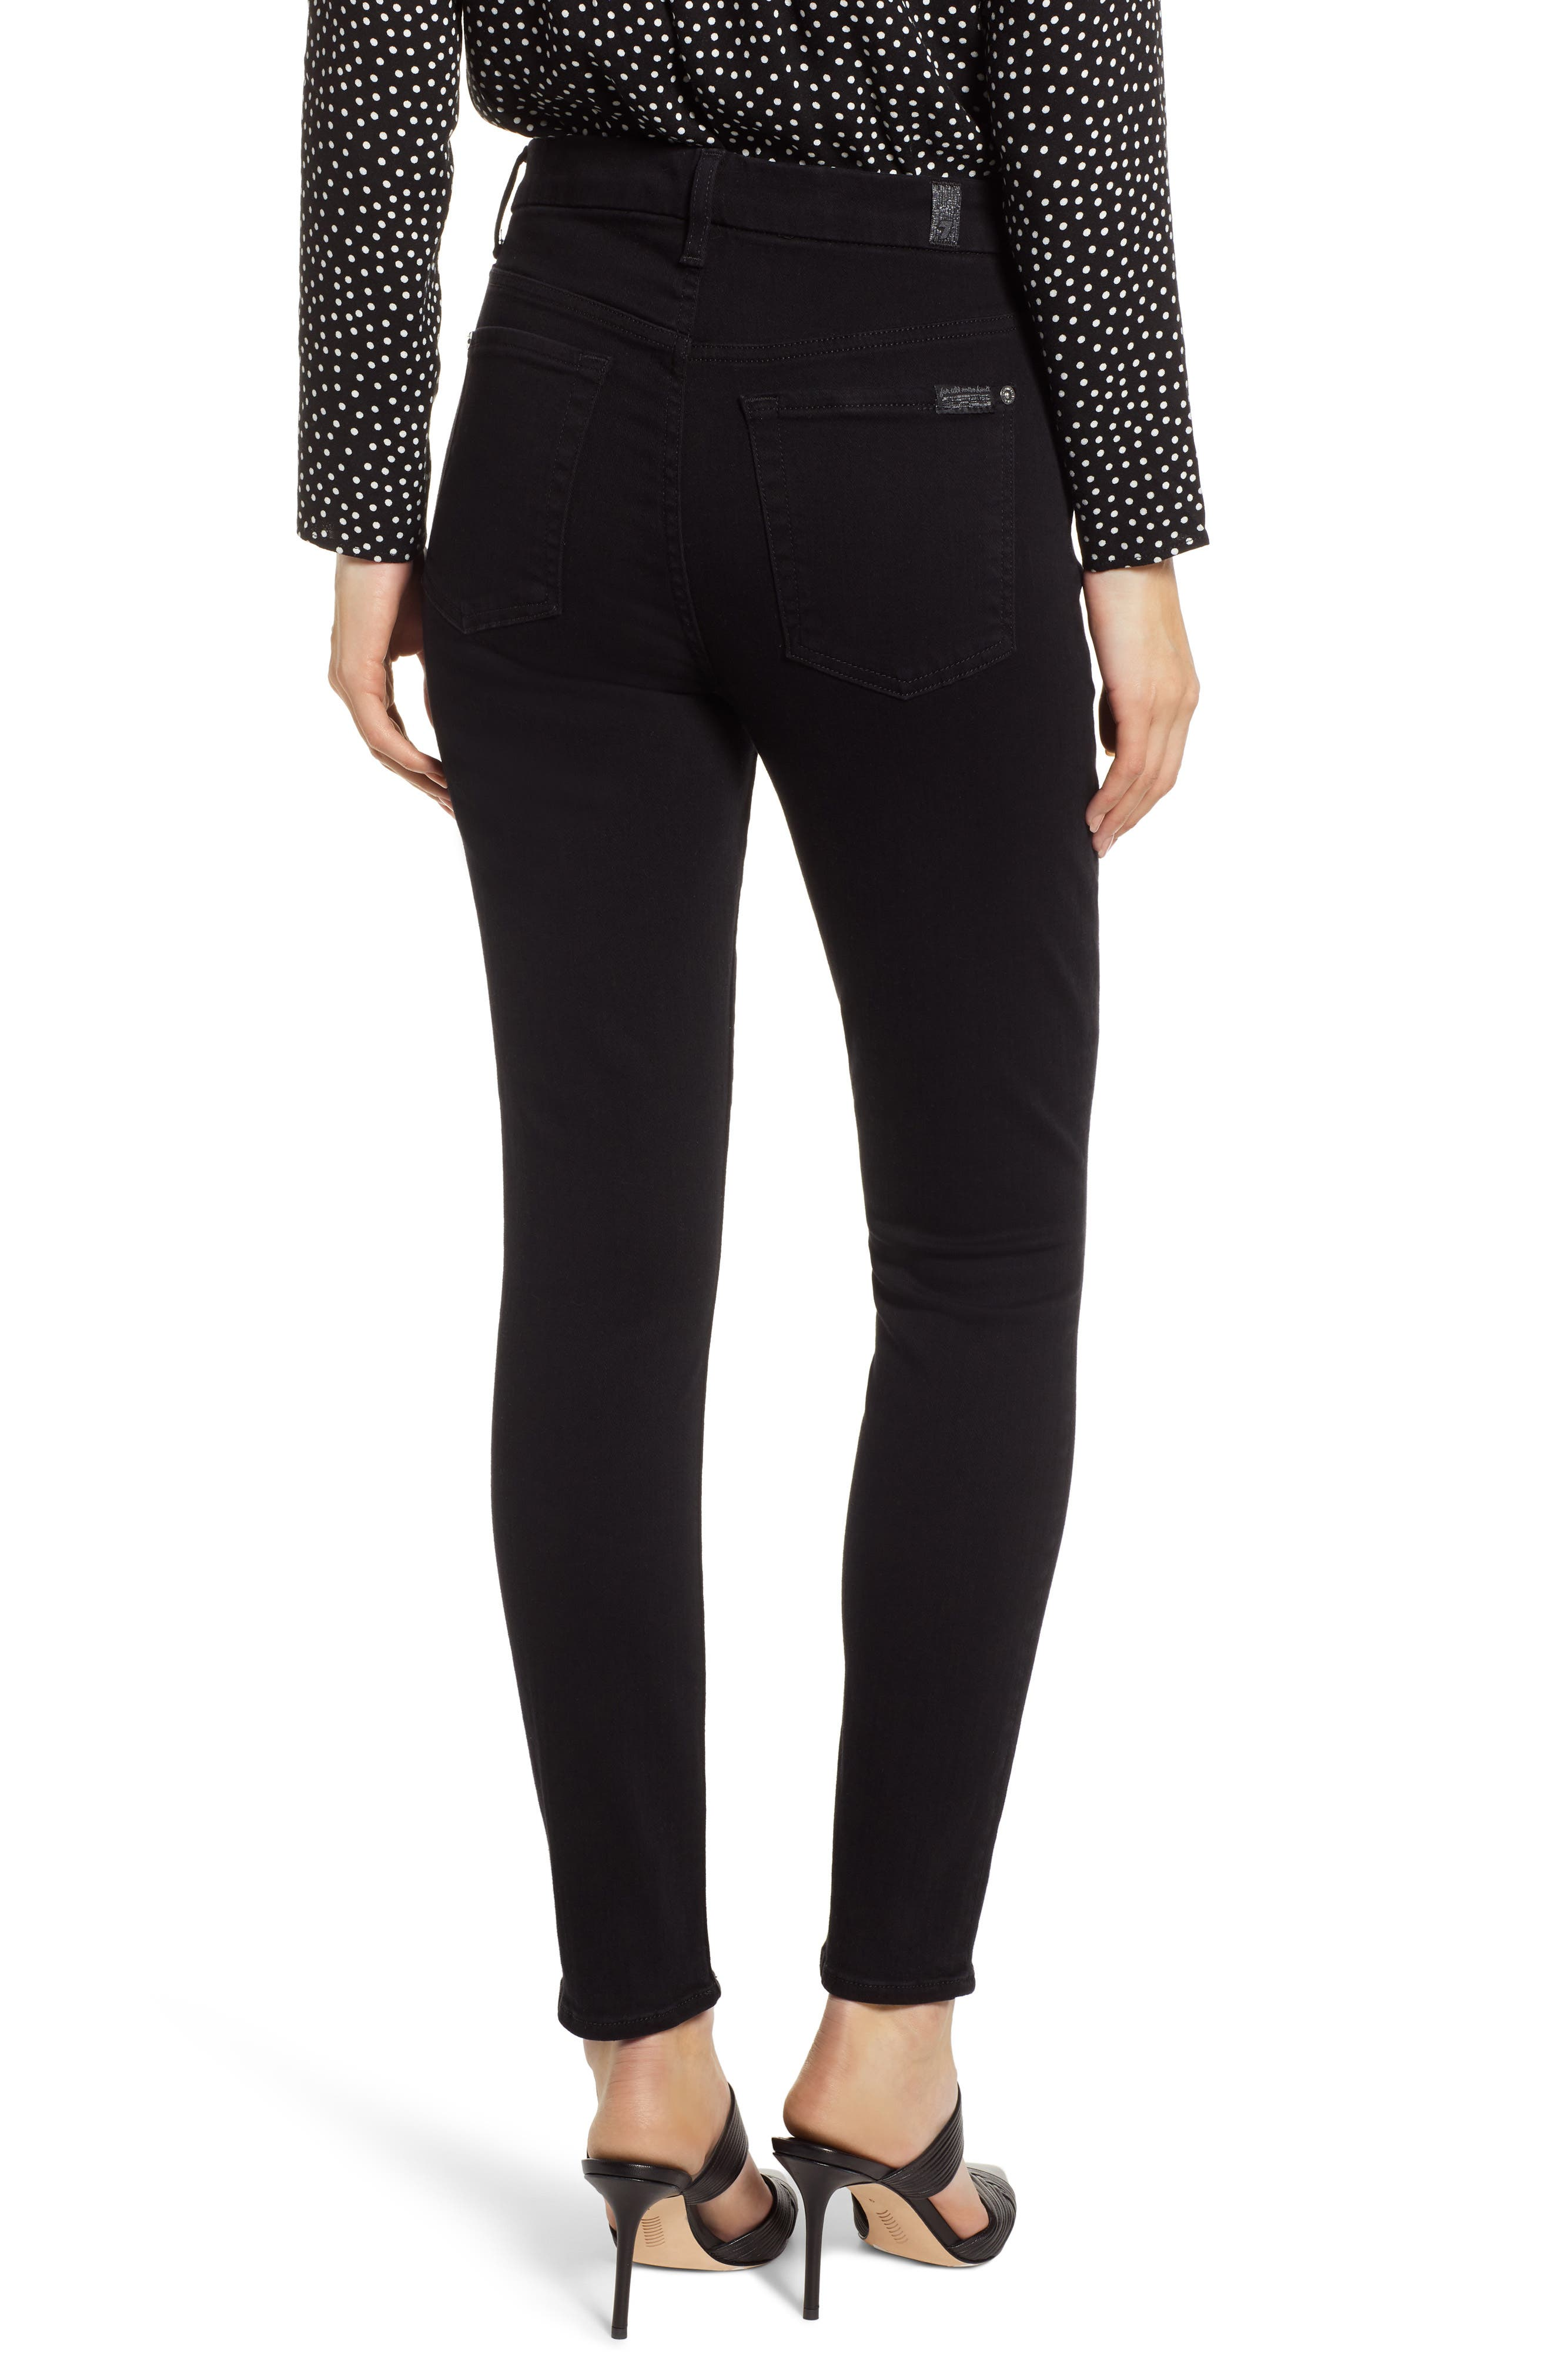 7 FOR ALL MANKIND<SUP>®</SUP>, Aubrey Super High Waist Ankle Skinny Jeans, Alternate thumbnail 2, color, PITCH BLACK